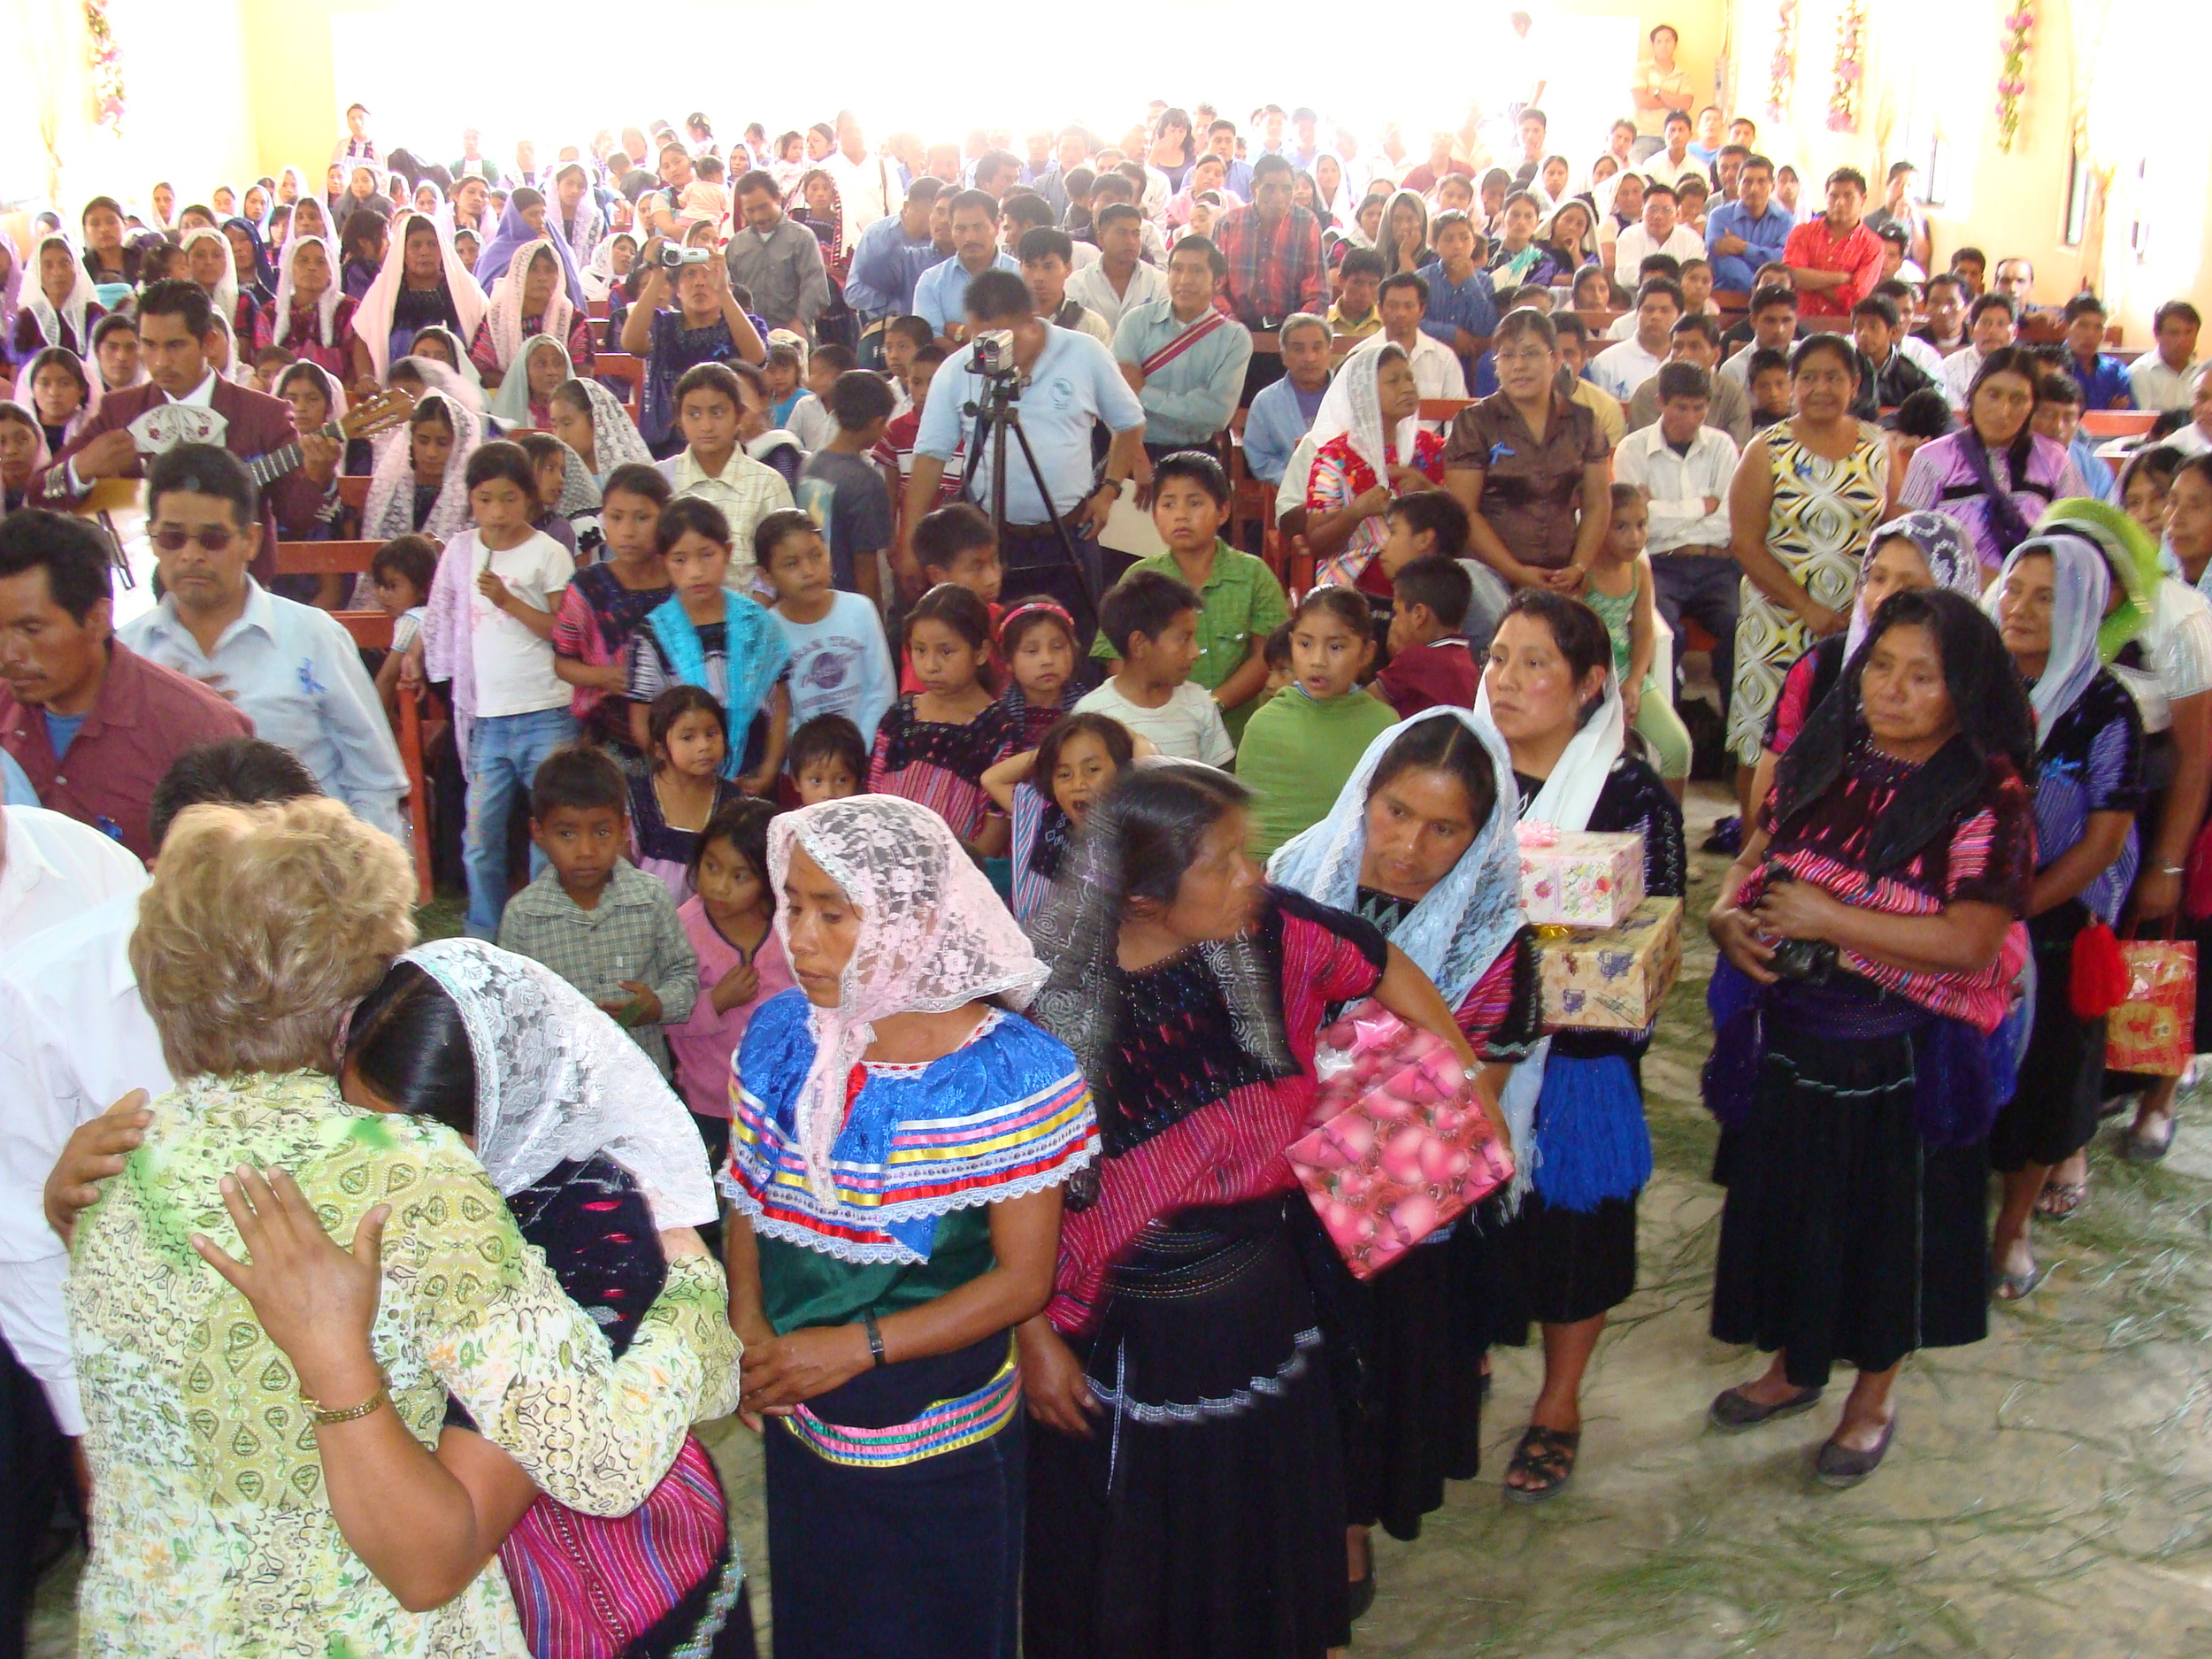 Hundreds gather for worship in Chiapas.